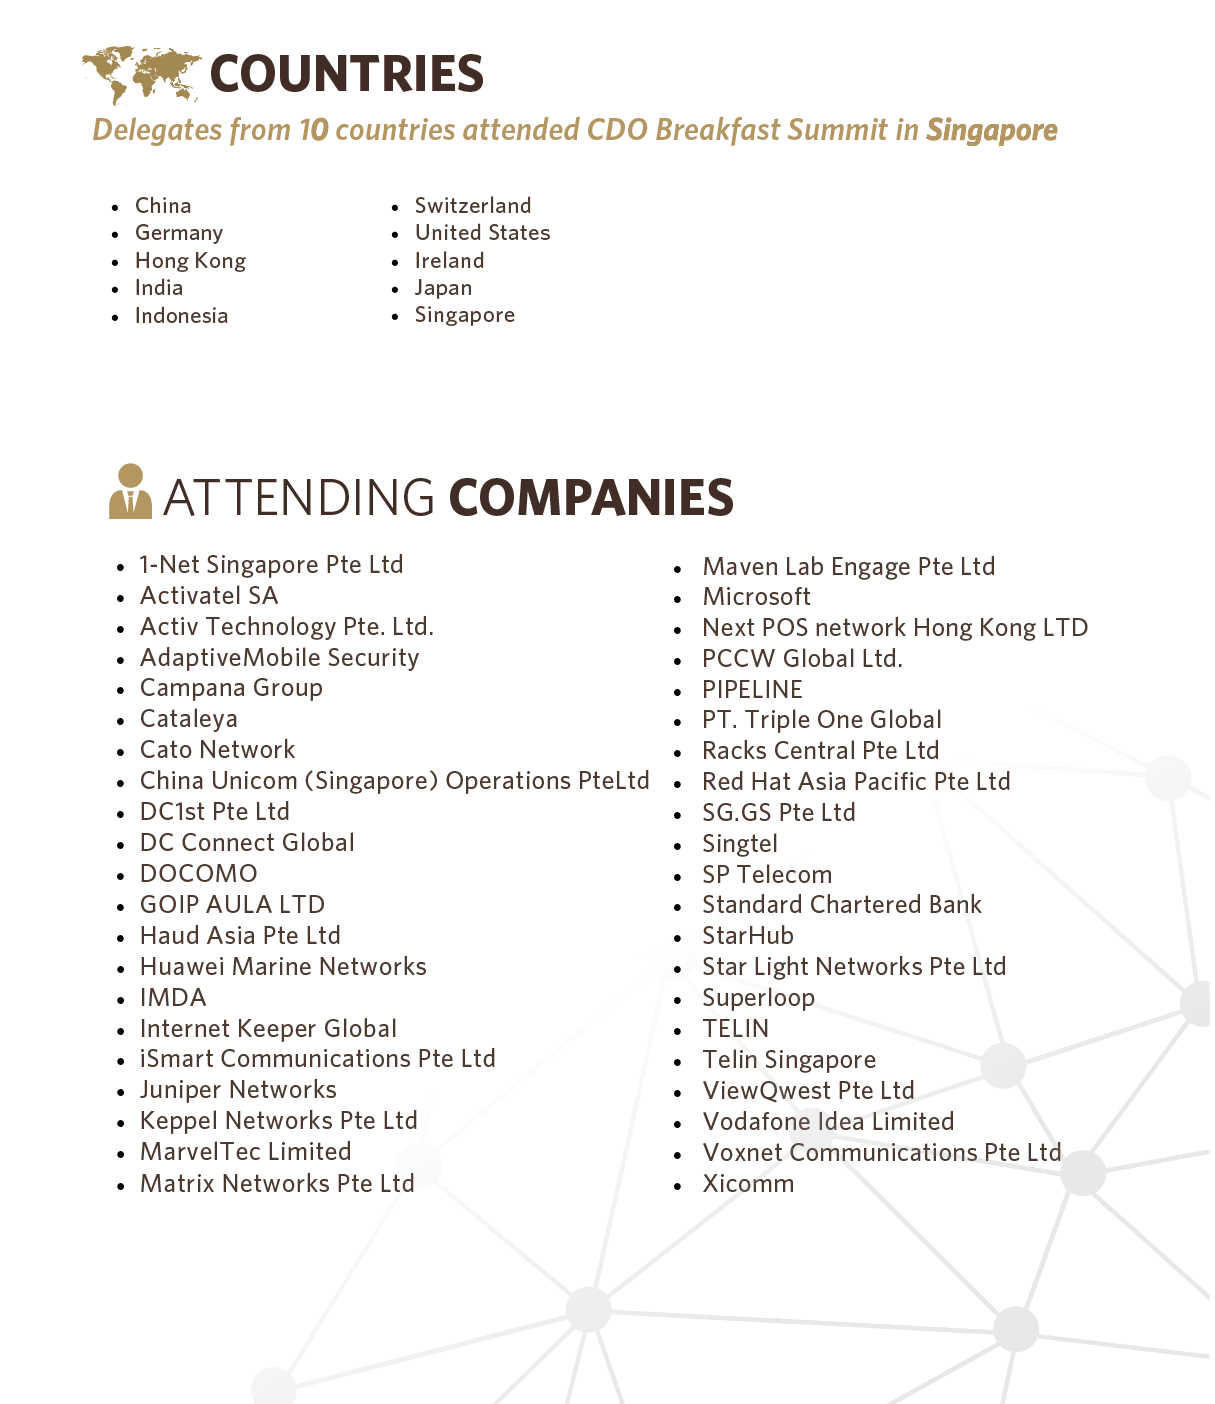 CDO BREAKFAST SUMMIT 2019 - Statistics